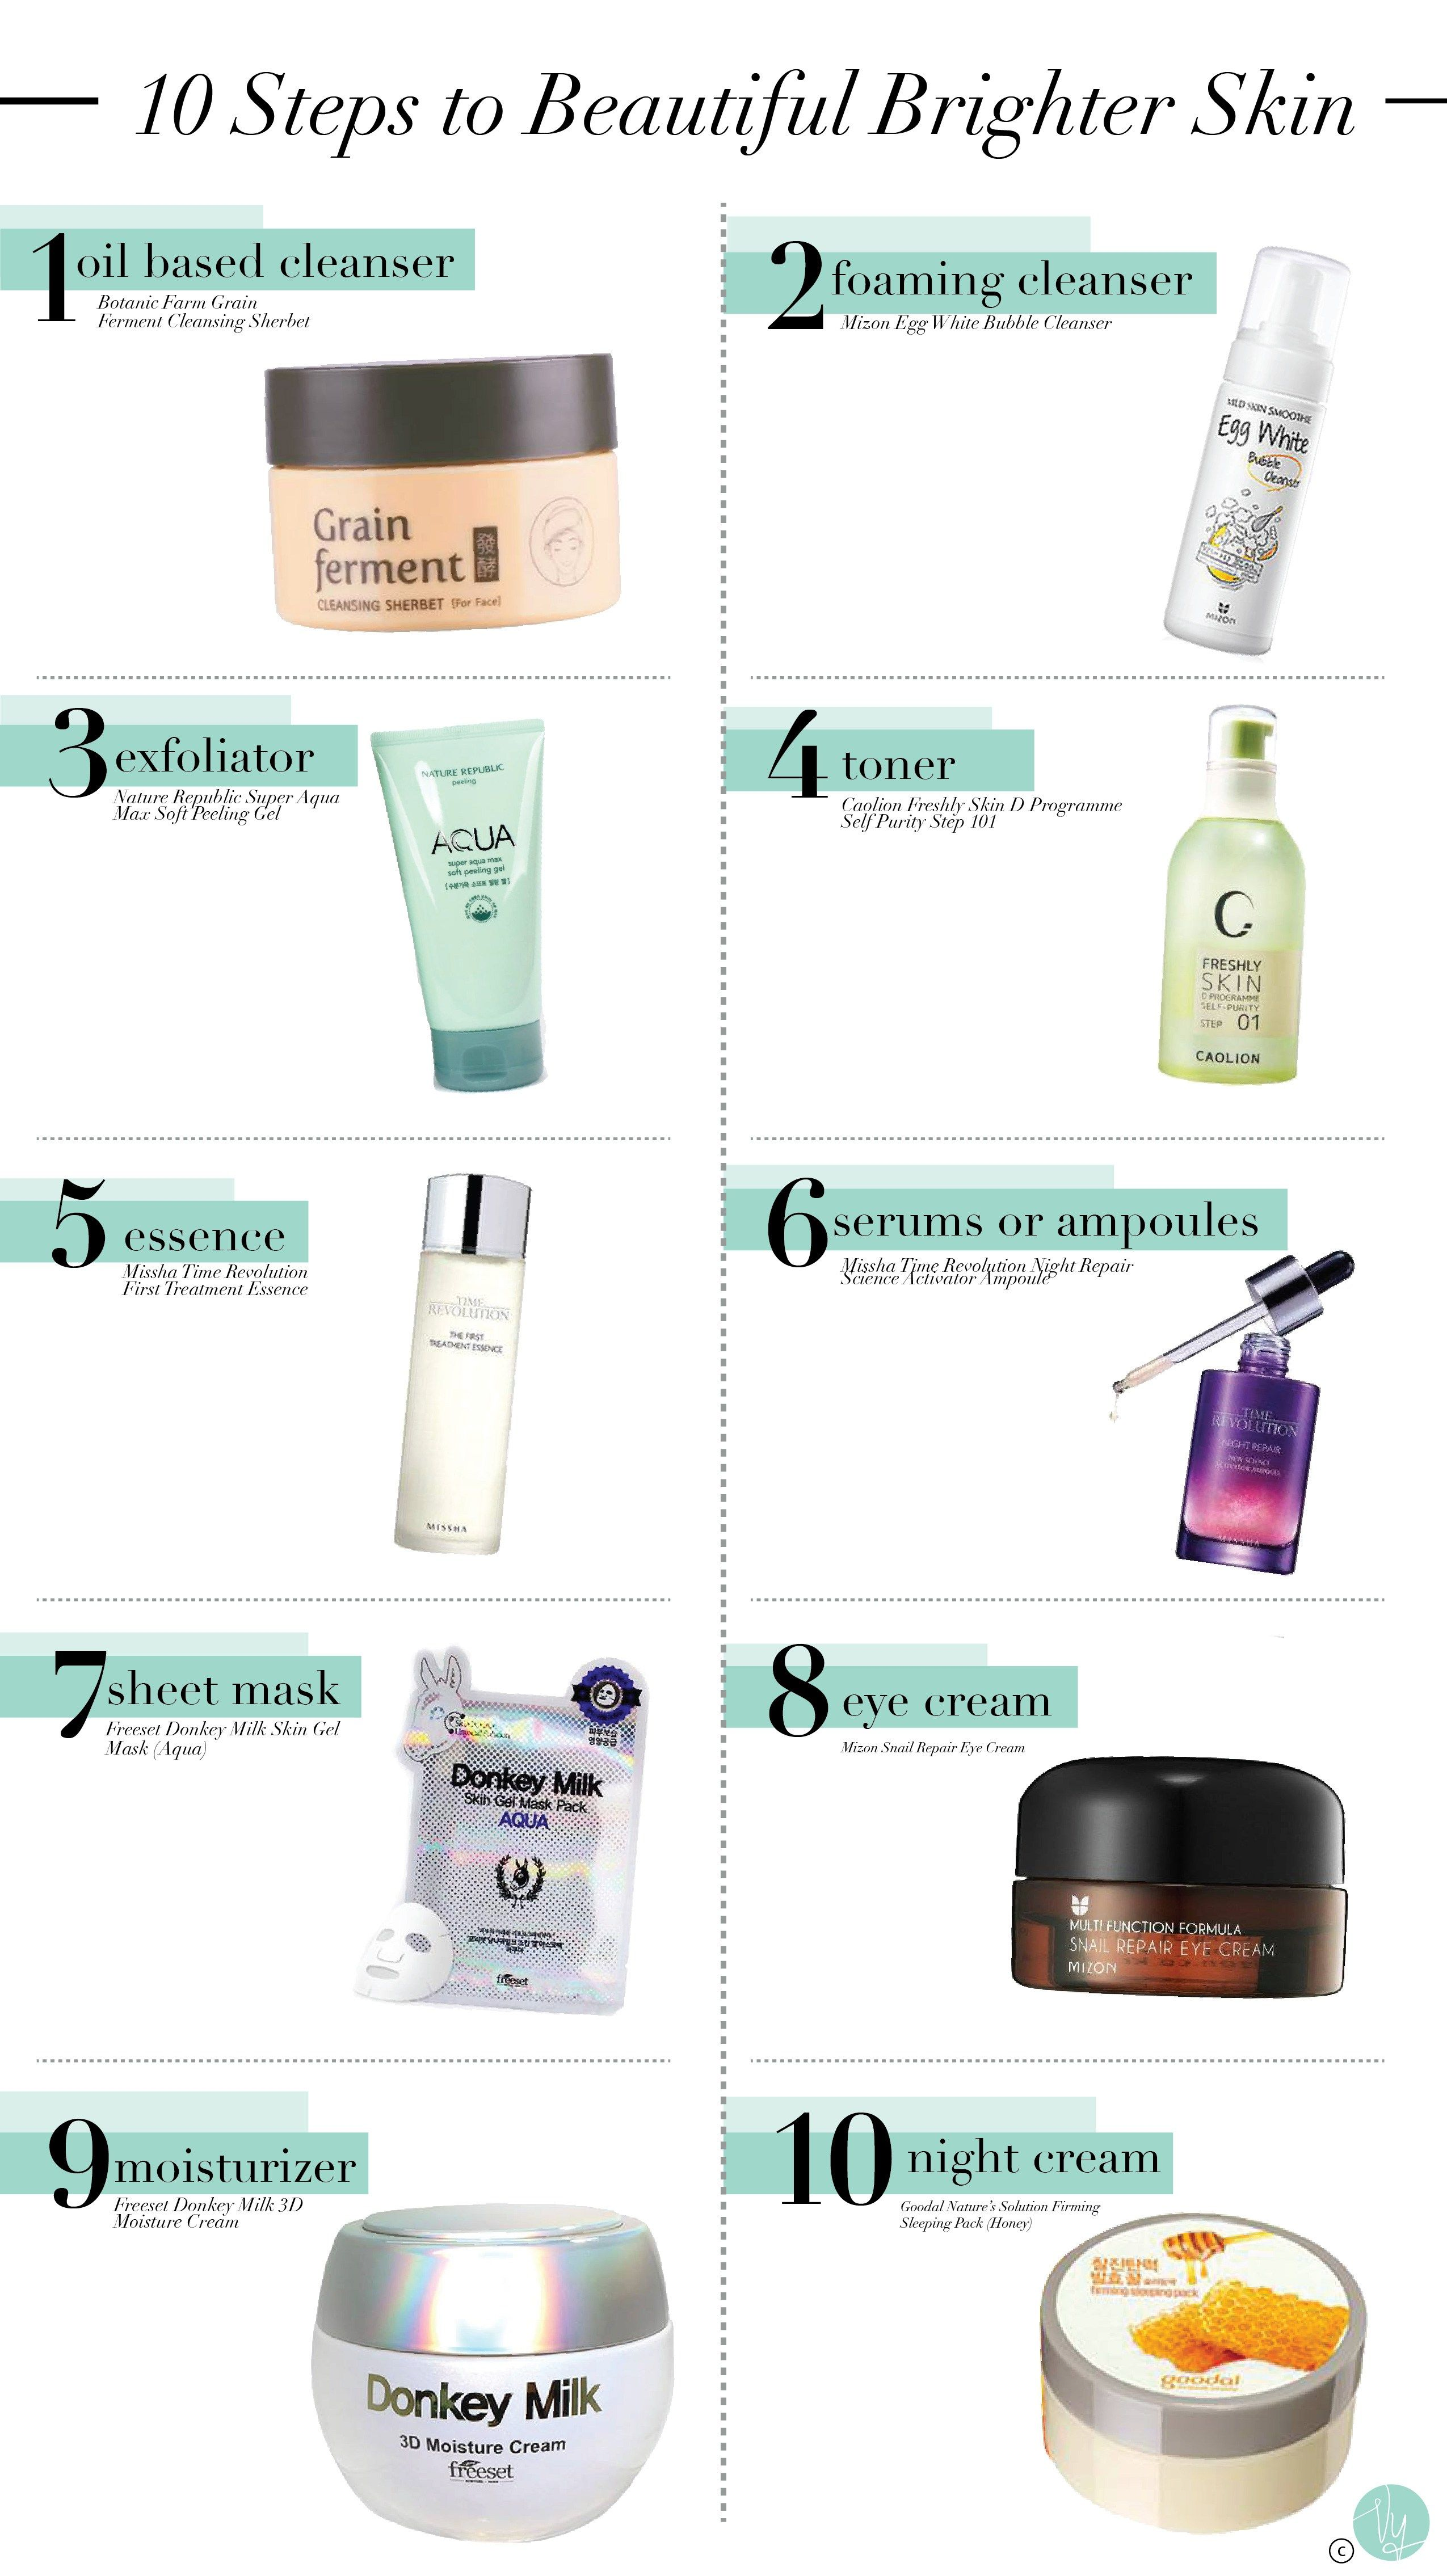 10 Steps To Beautiful Brighter Skin My Korean Skincare Routine Skin Care Korean 10 Step Skin Care Oil Based Cleanser